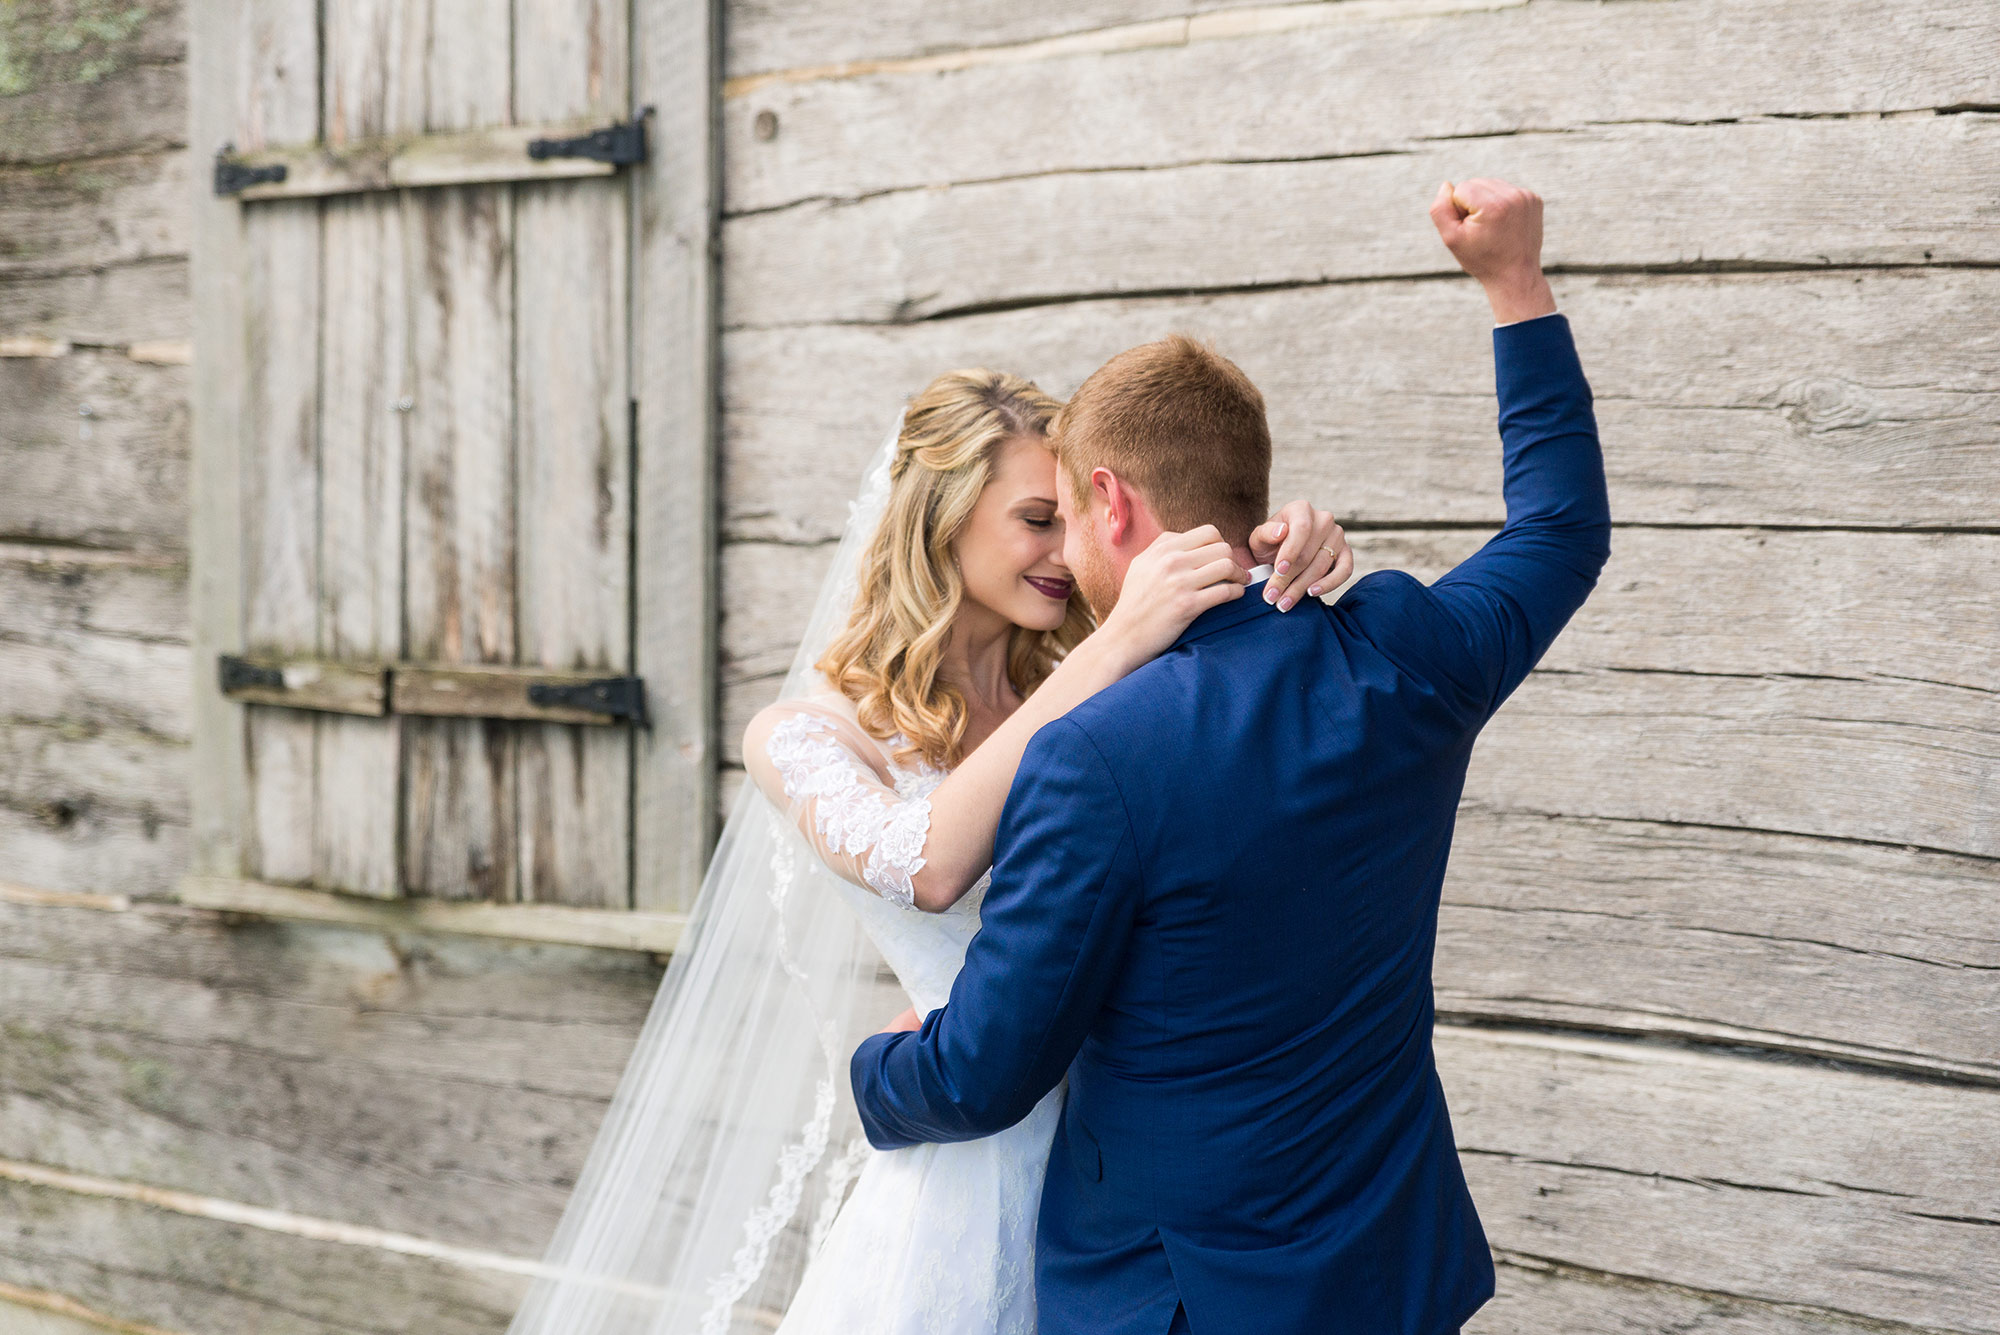 Copy of Bride and Groom in Front of Barn on Wedding Day  |  Life & Art Photography  |  Destination Wedding Photographer